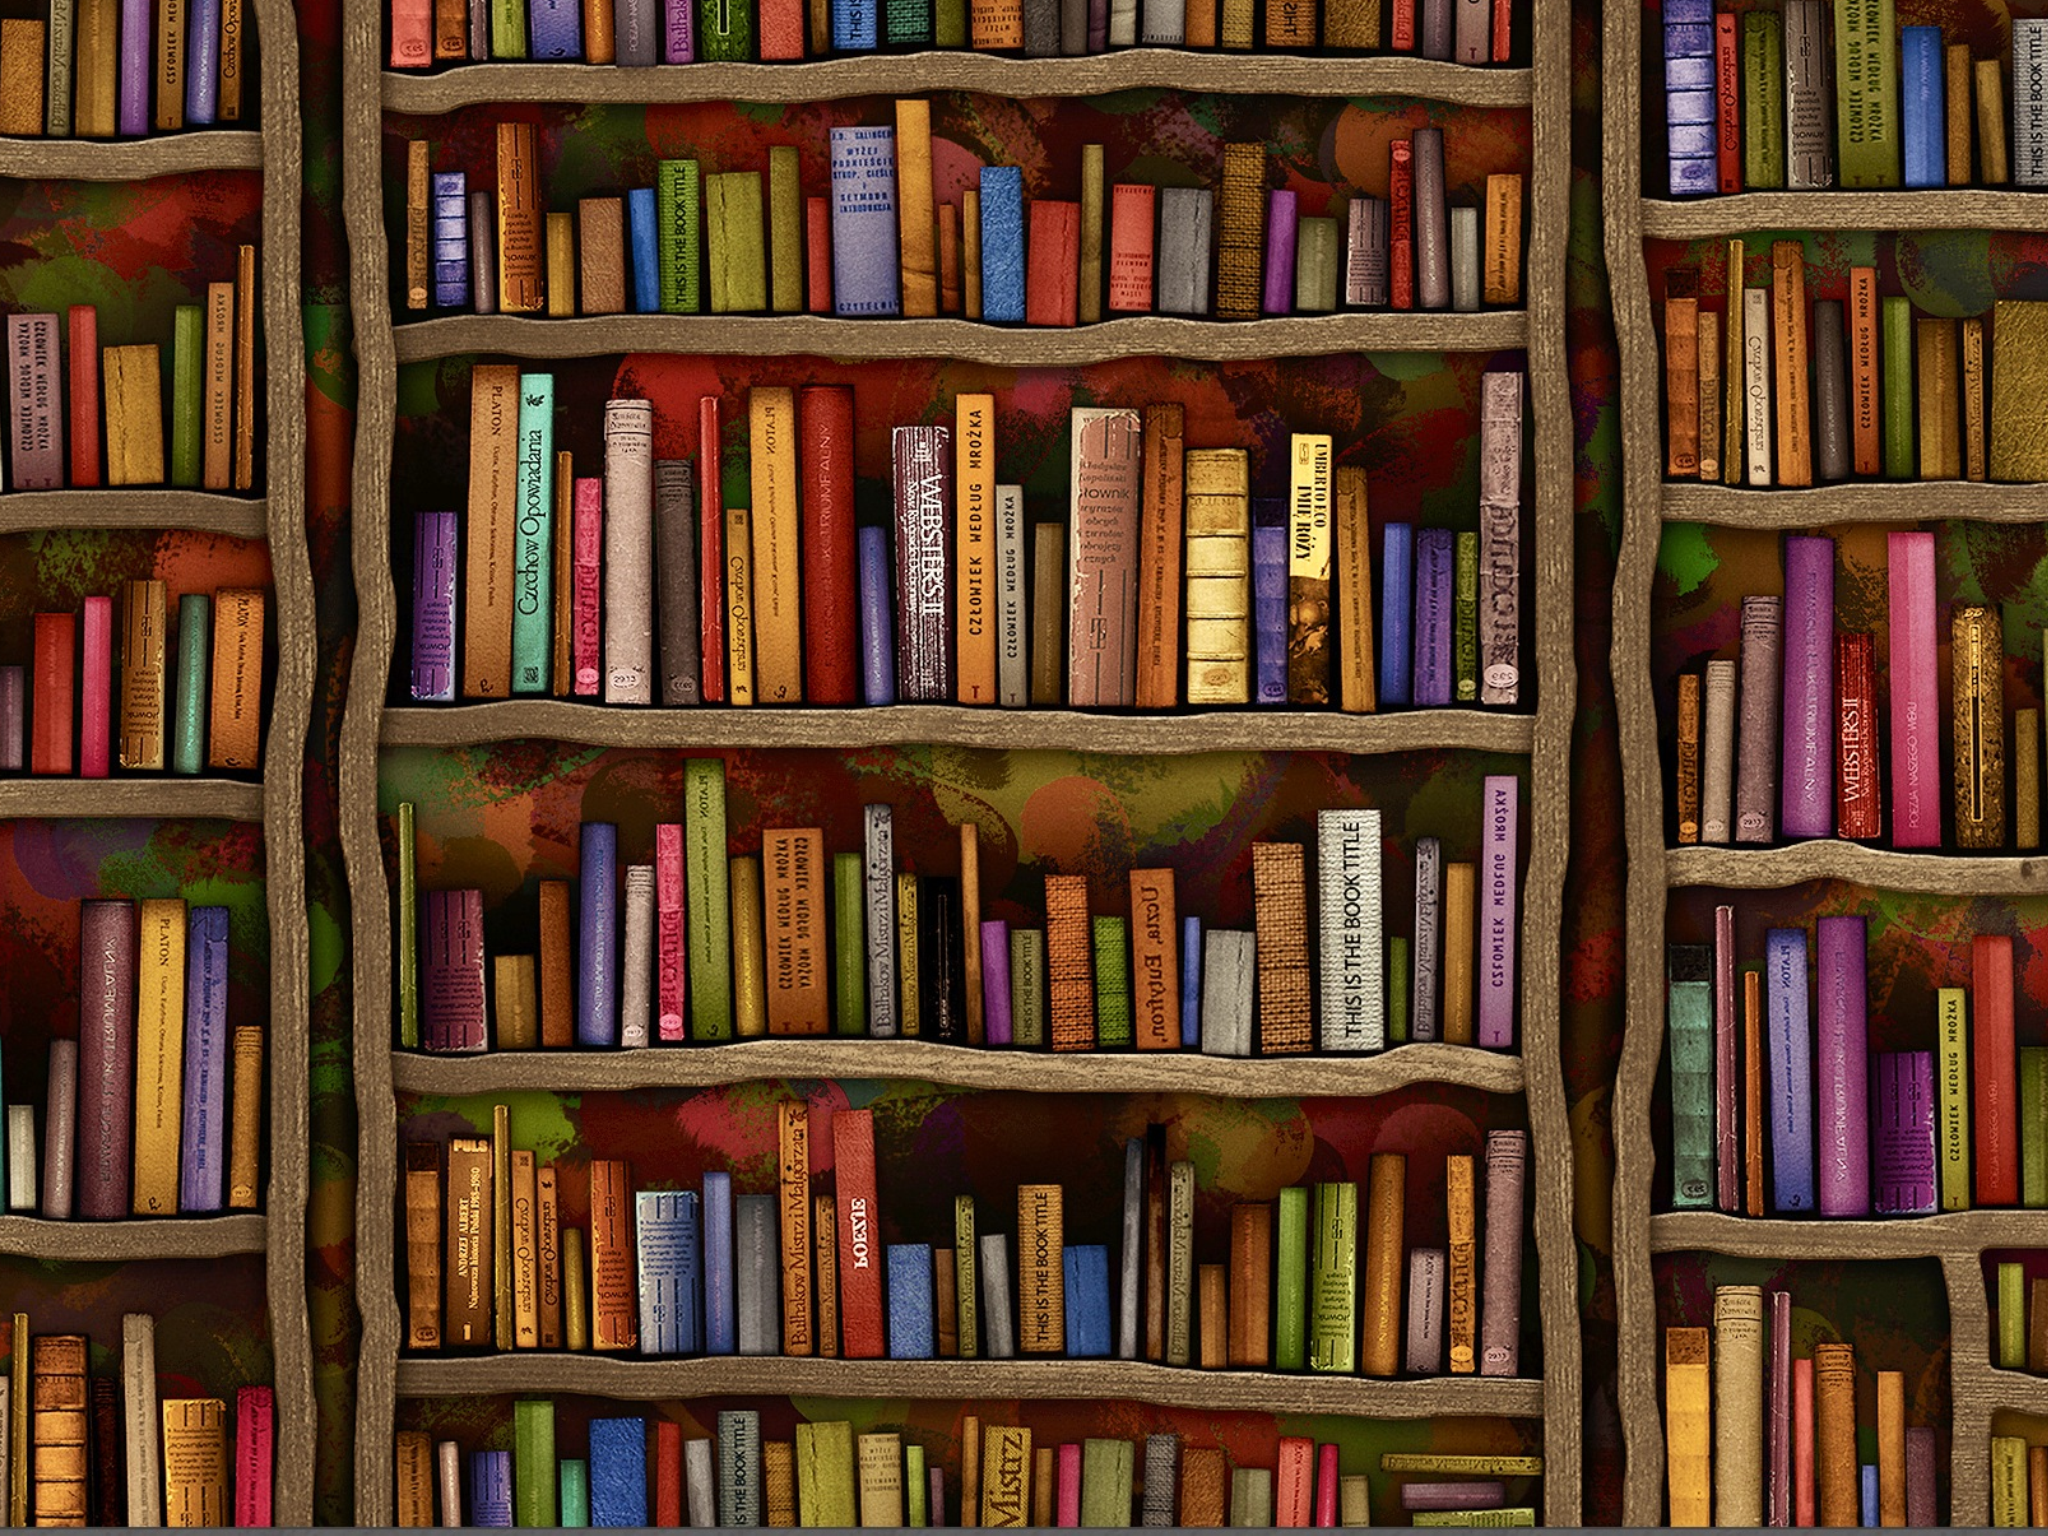 Pin By C Raby On Books Livres Et Magazines Book Wallpaper Wallpaper Bookshelf Cool Iphone 6 Wallpapers